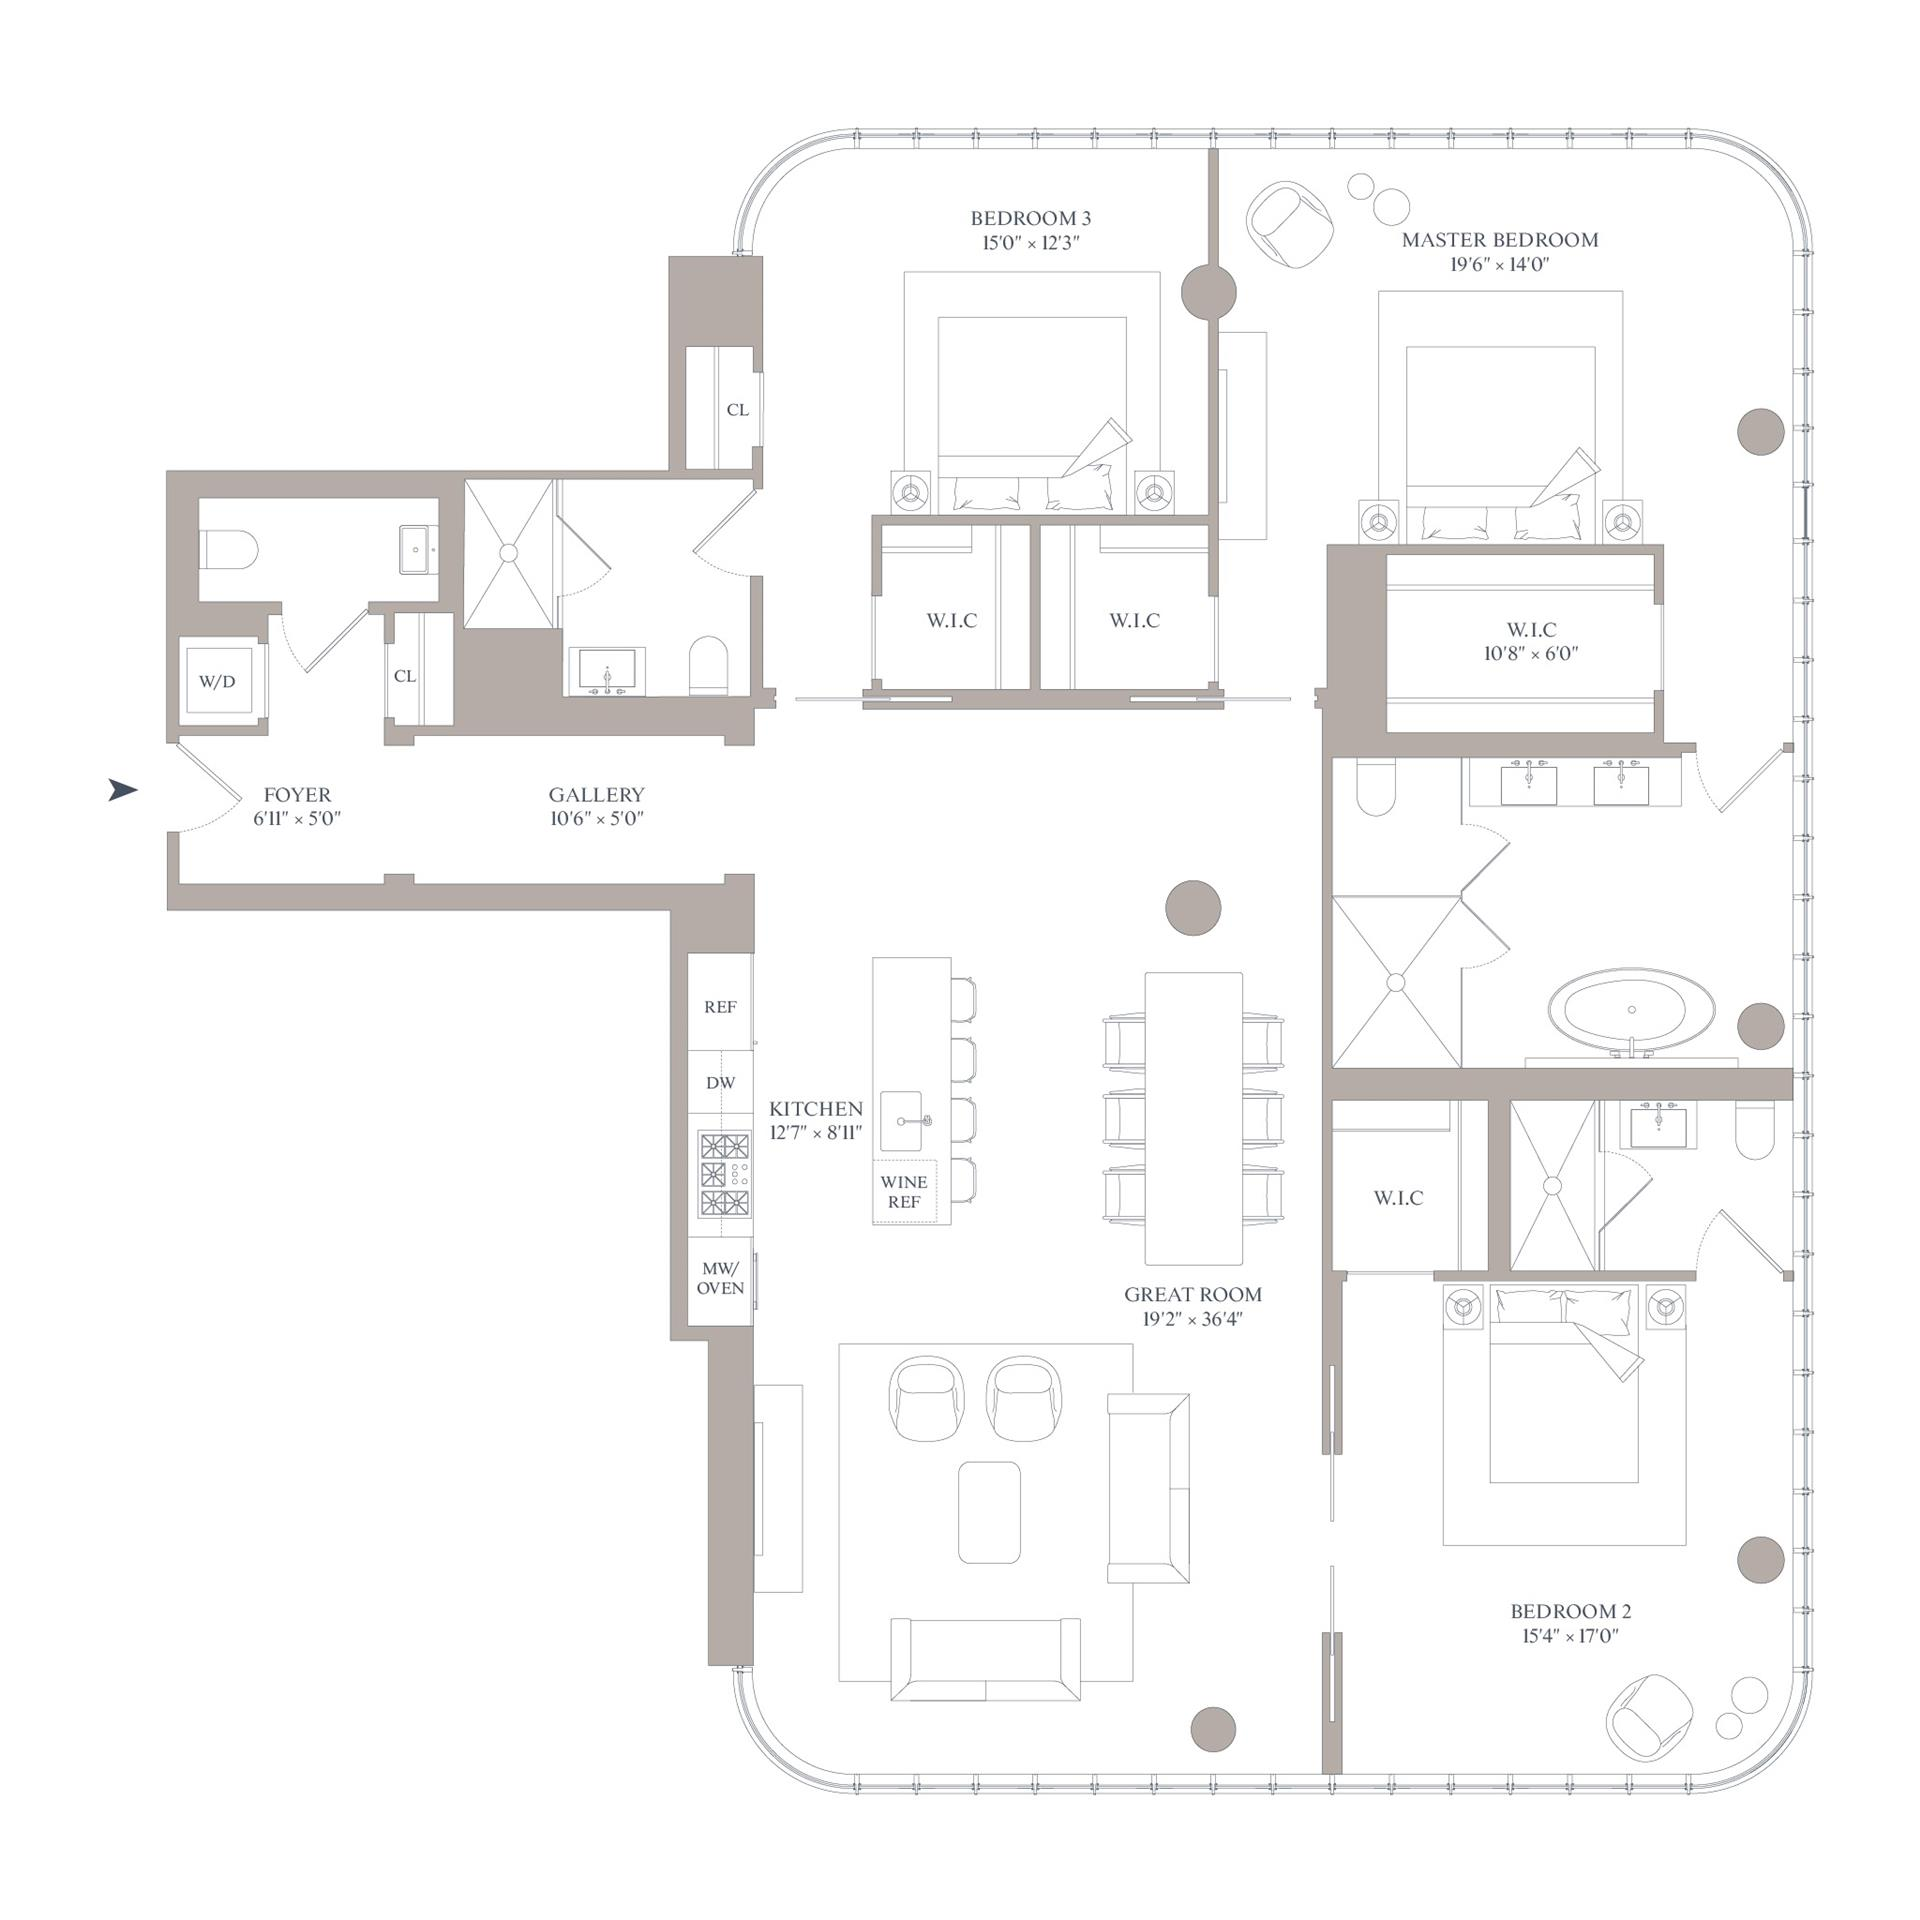 Floor plan of 565 Broome St, S11E - SoHo - Nolita, New York